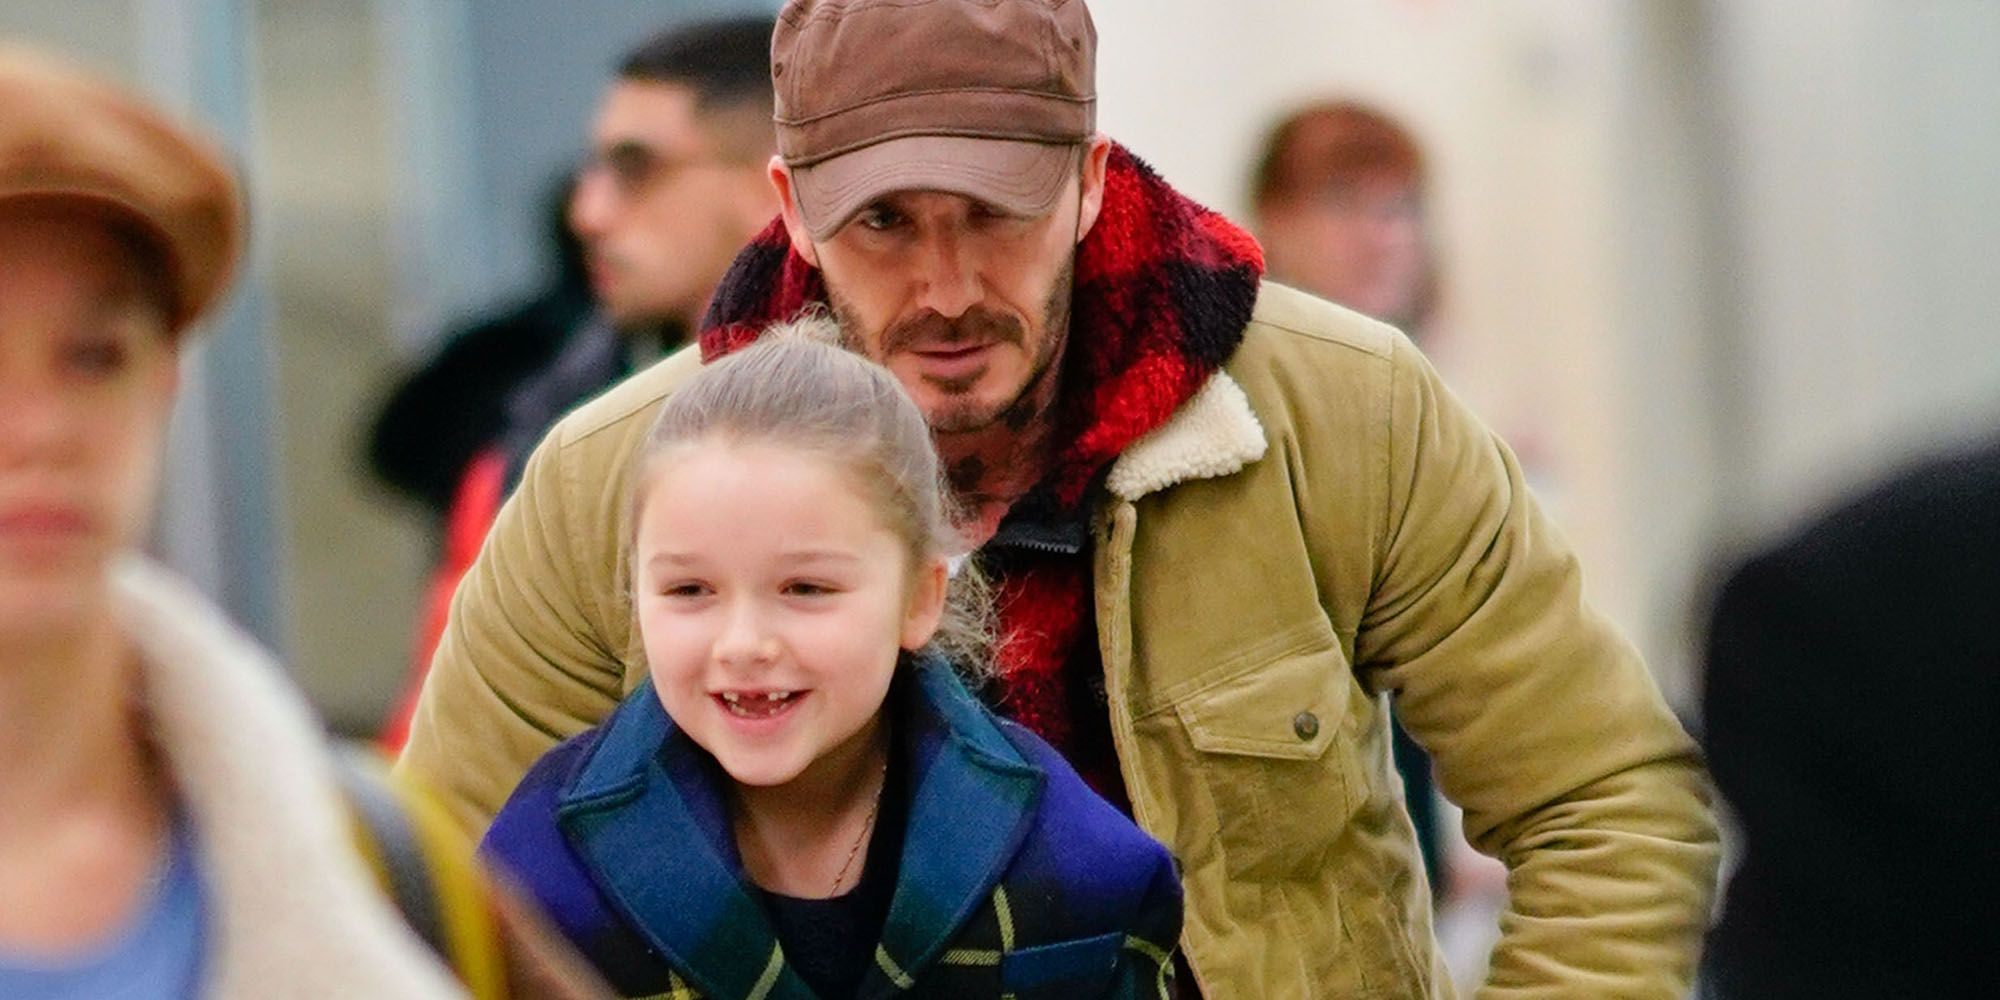 Harper Beckham had the best transport at the airport thanks to dad David Beckham as they arrived in NYC